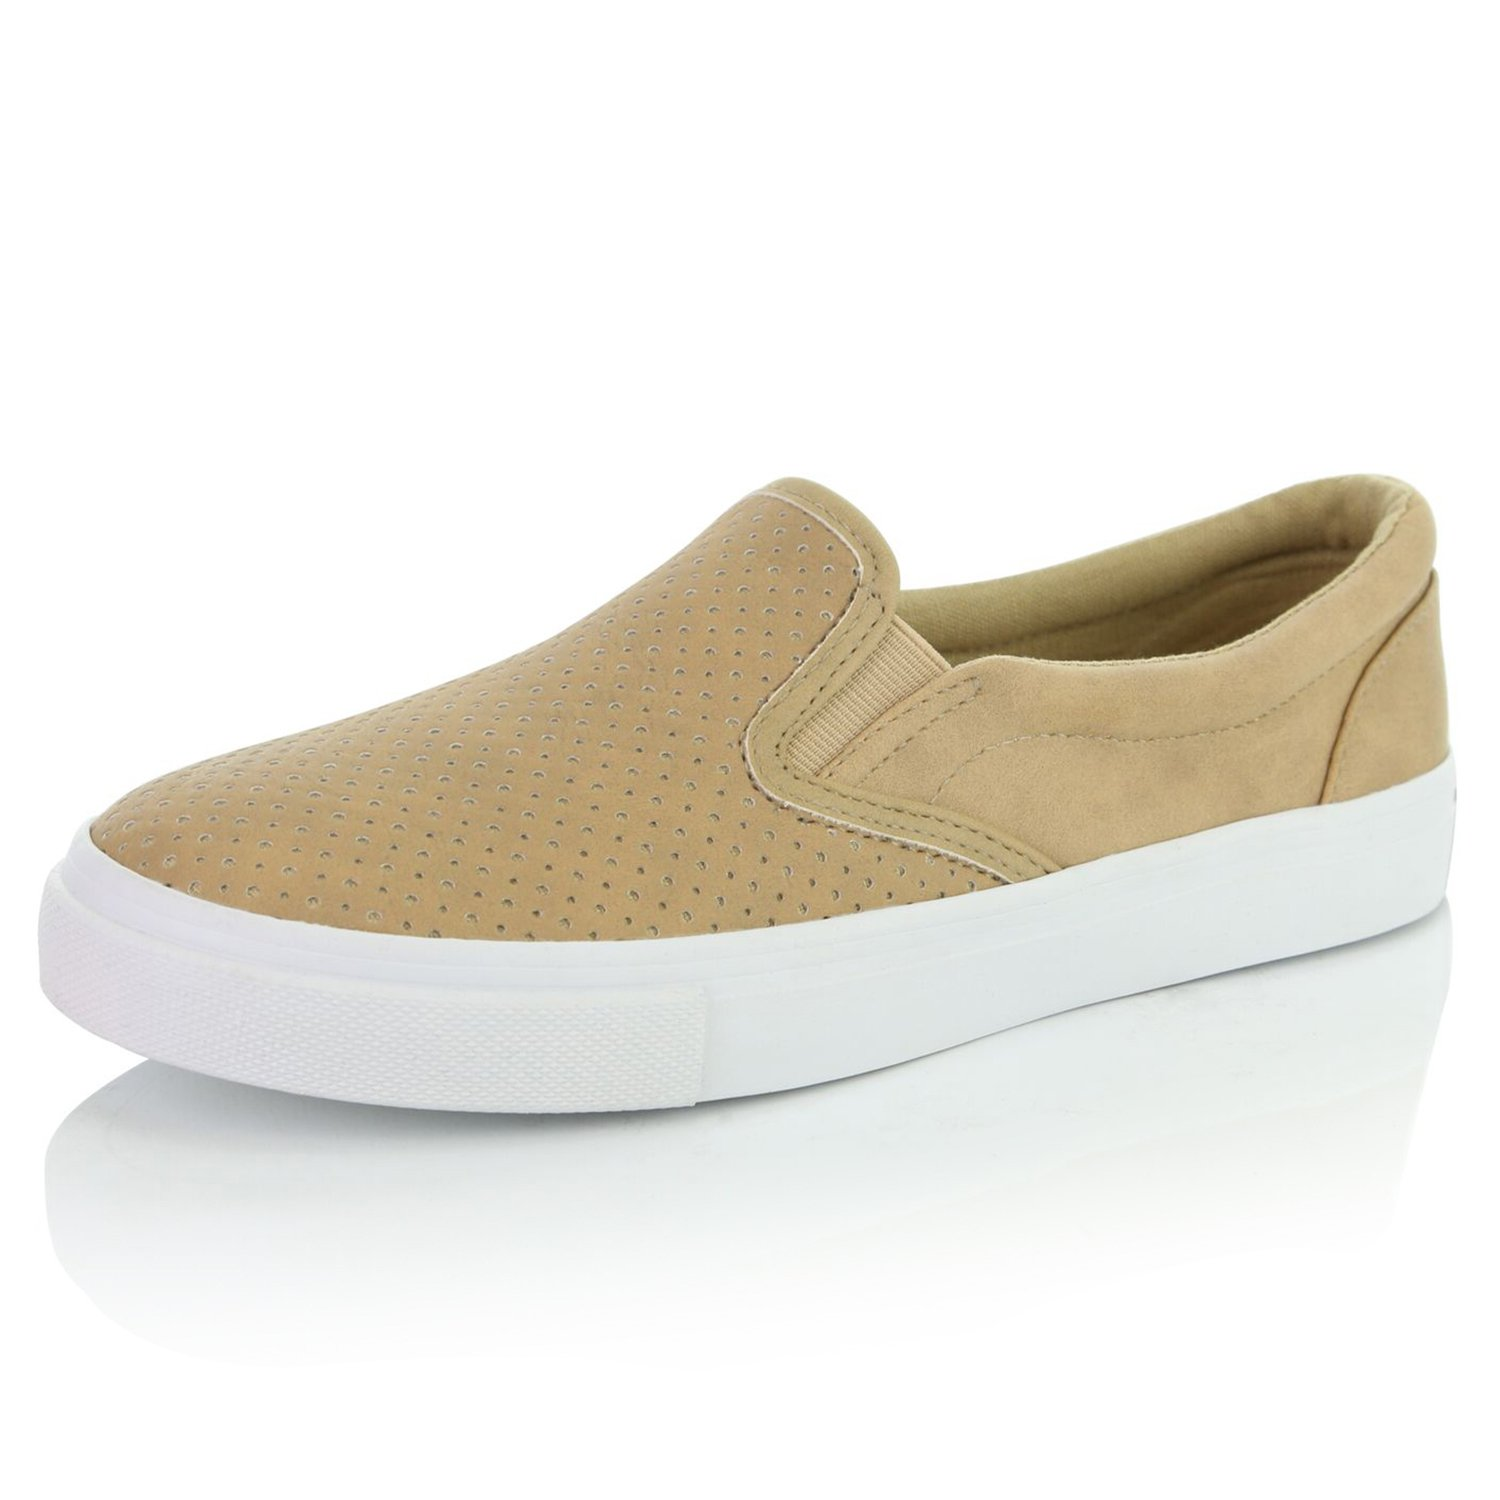 DailyShoes Women's Fashion Casual Slip-On Loafers Sneakers Shoes, Camel PU, 8 B(M) US